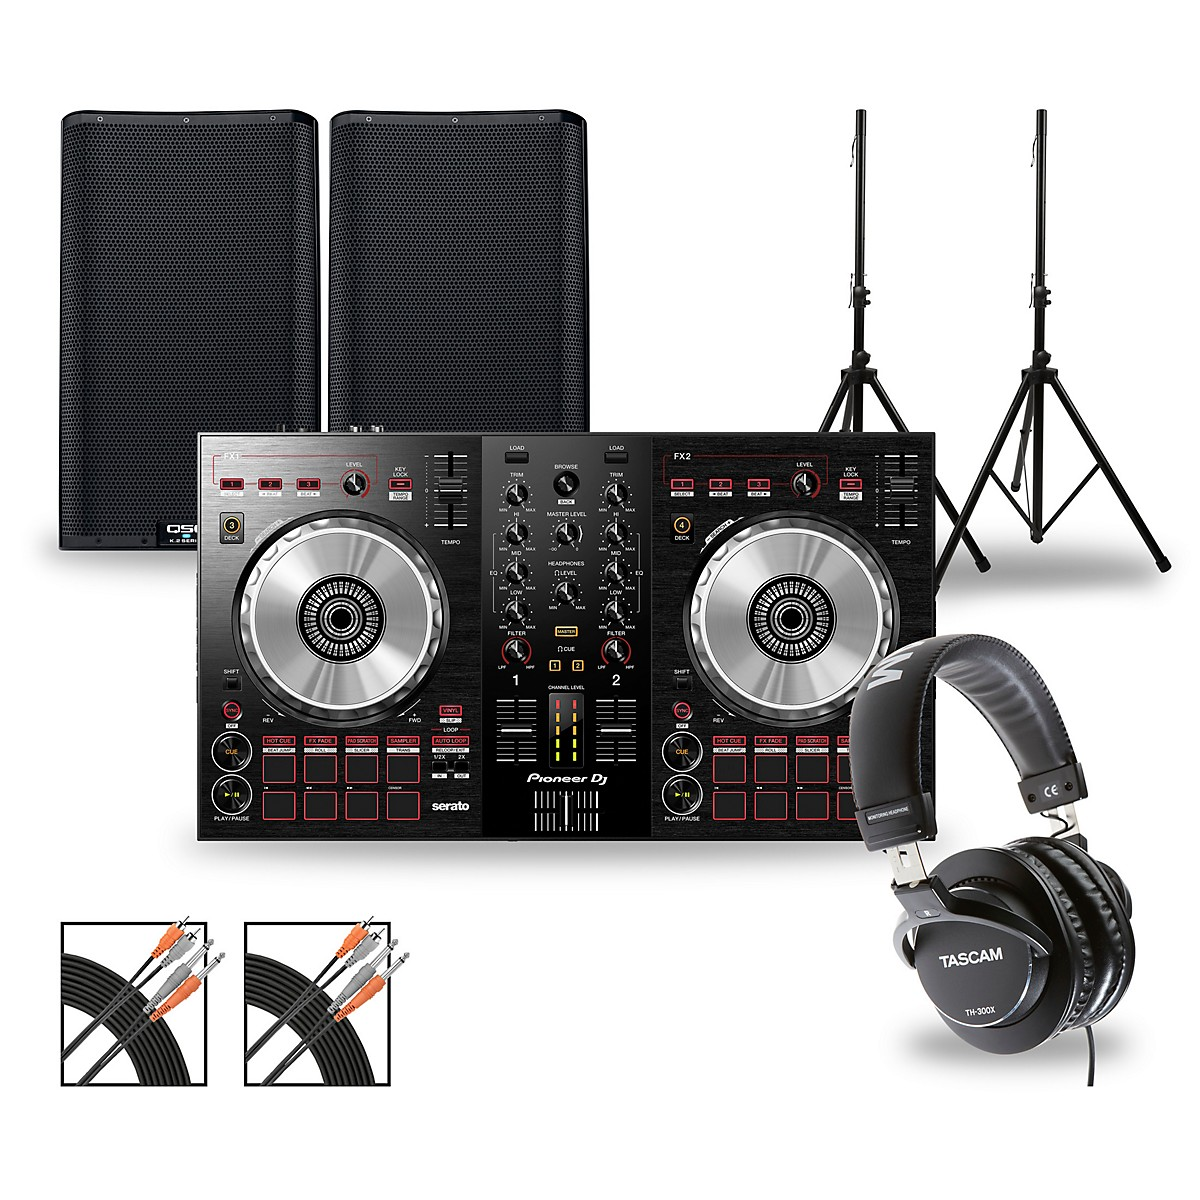 Pioneer DJ Package with DDJ-SB3 Controller and QSC K.2 Series Speakers